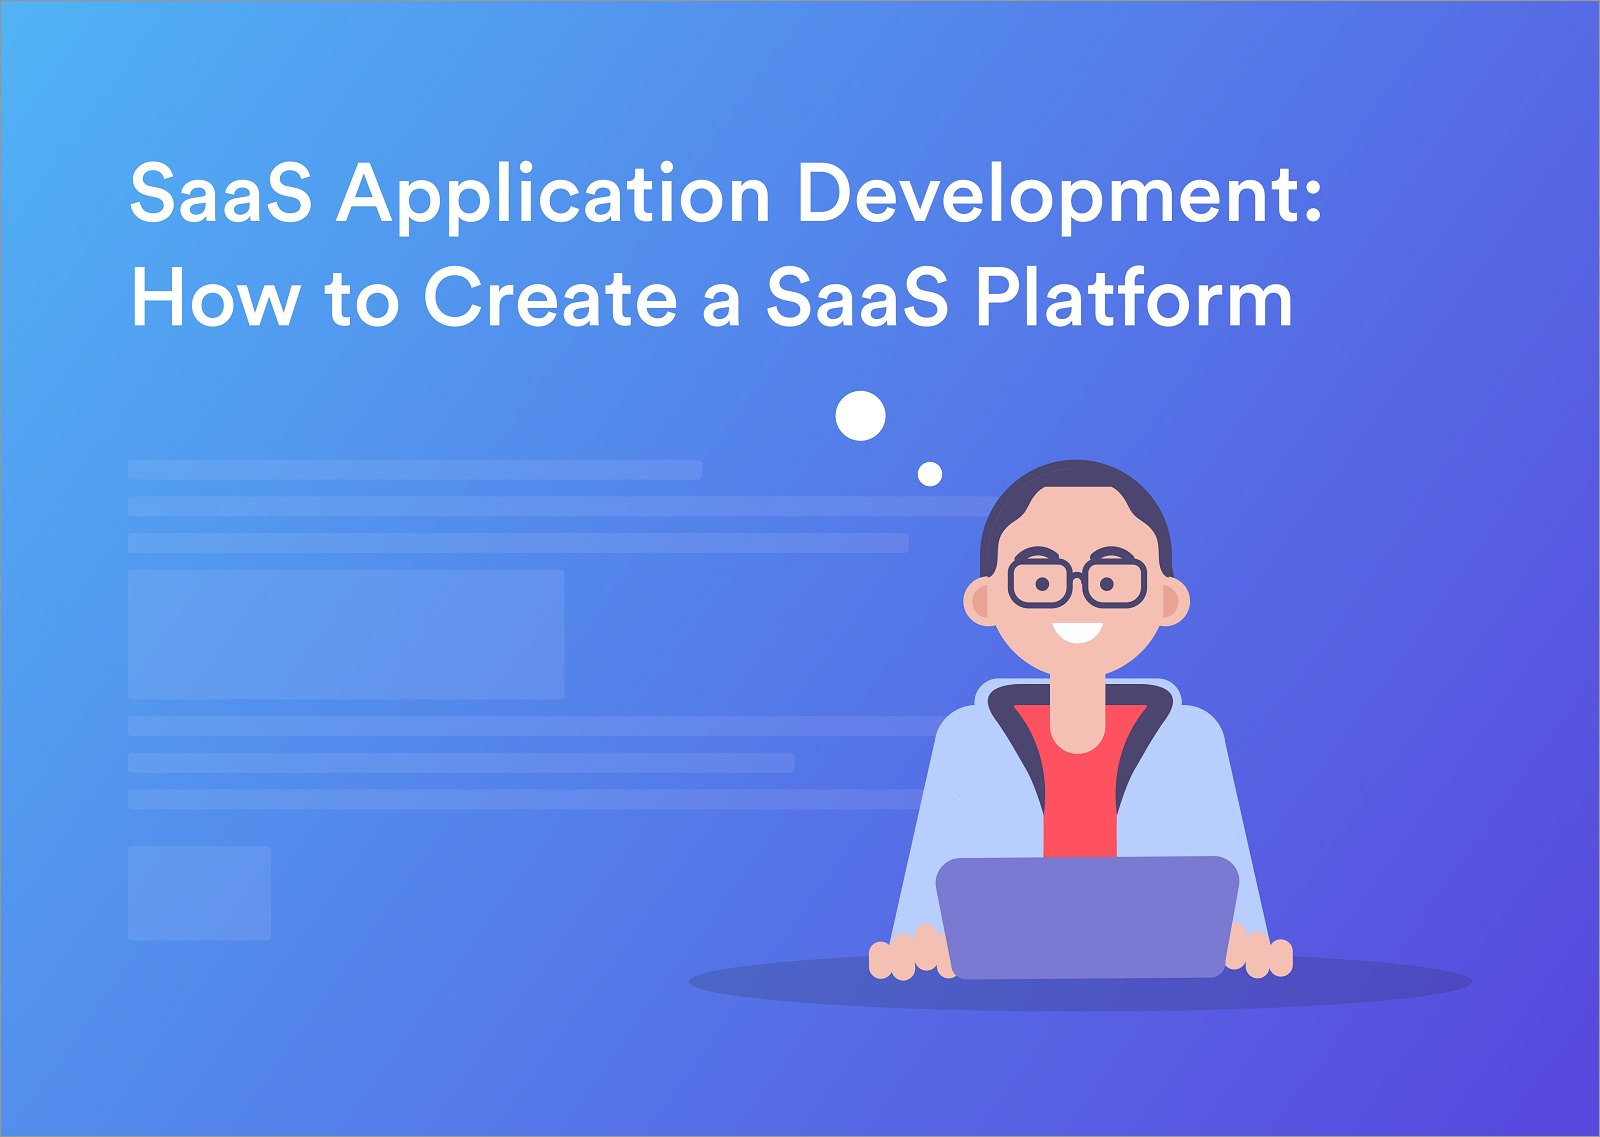 SaaS Application Development: How to Create a SaaS Platform